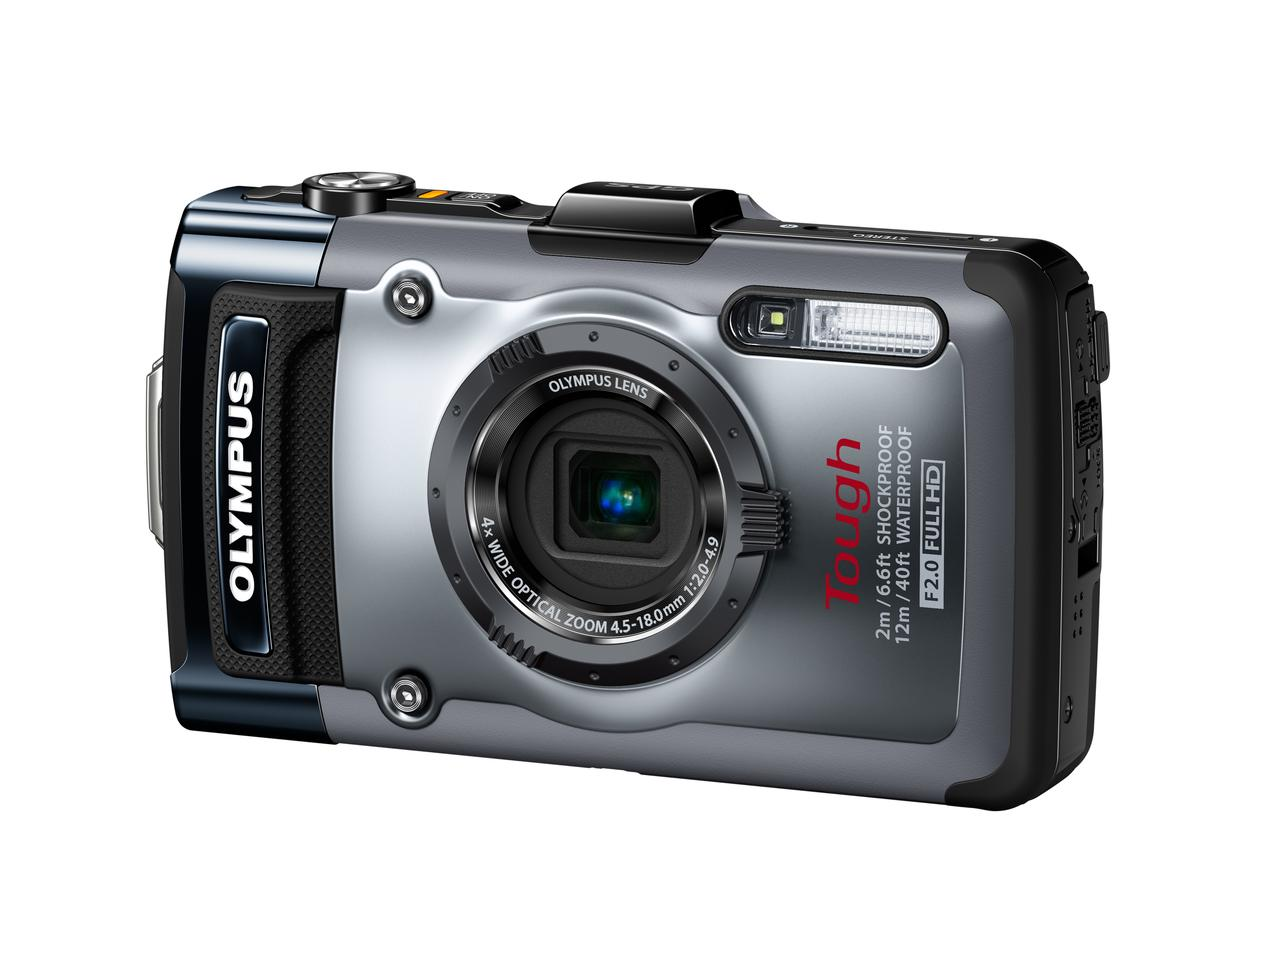 After much speculation online, Olympus has finally confirmed details and availability for the new TOUGH TG-1 iHS compact